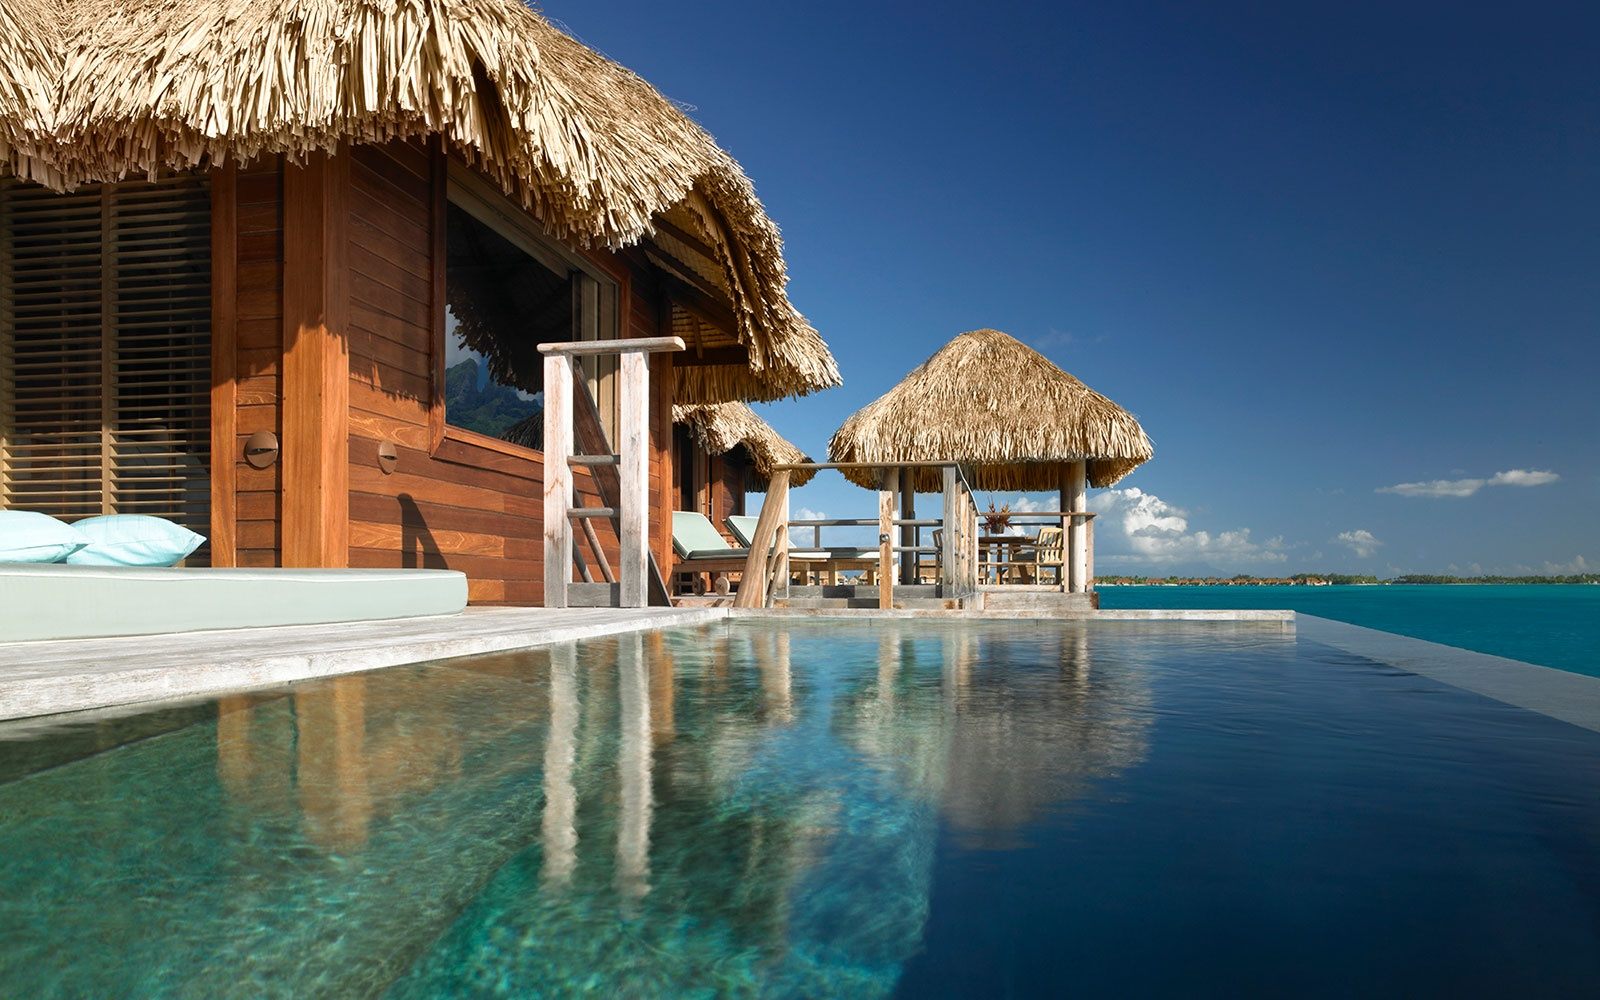 Best in Australia, New Zealand, South Pacific: Four Seasons Bora Bora